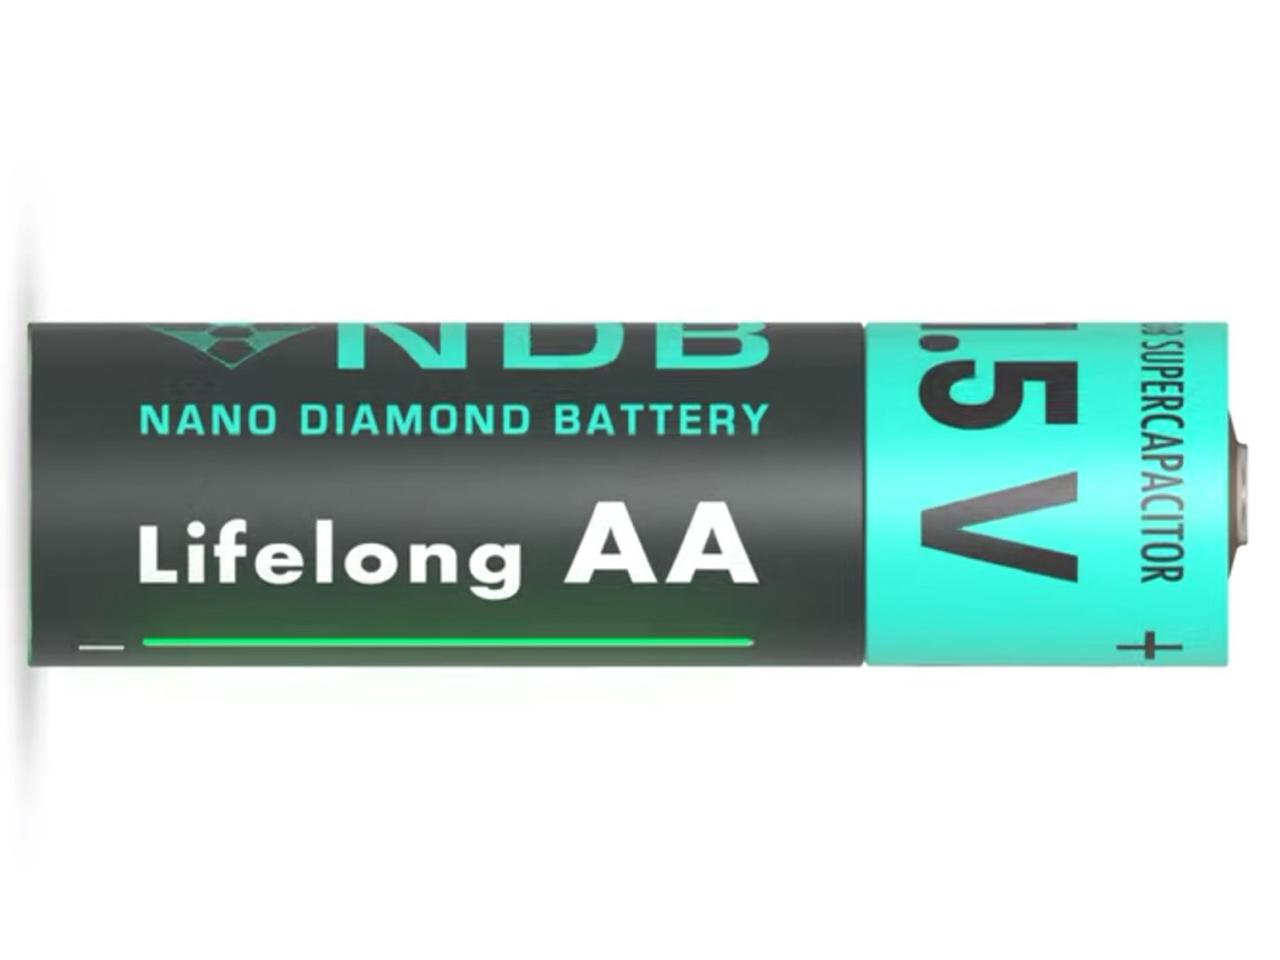 Nano diamond batteries: each one generates its own power for decades, even millennia, using recycled nuclear waste safely packaged in crash-proof, tamper-proof diamond